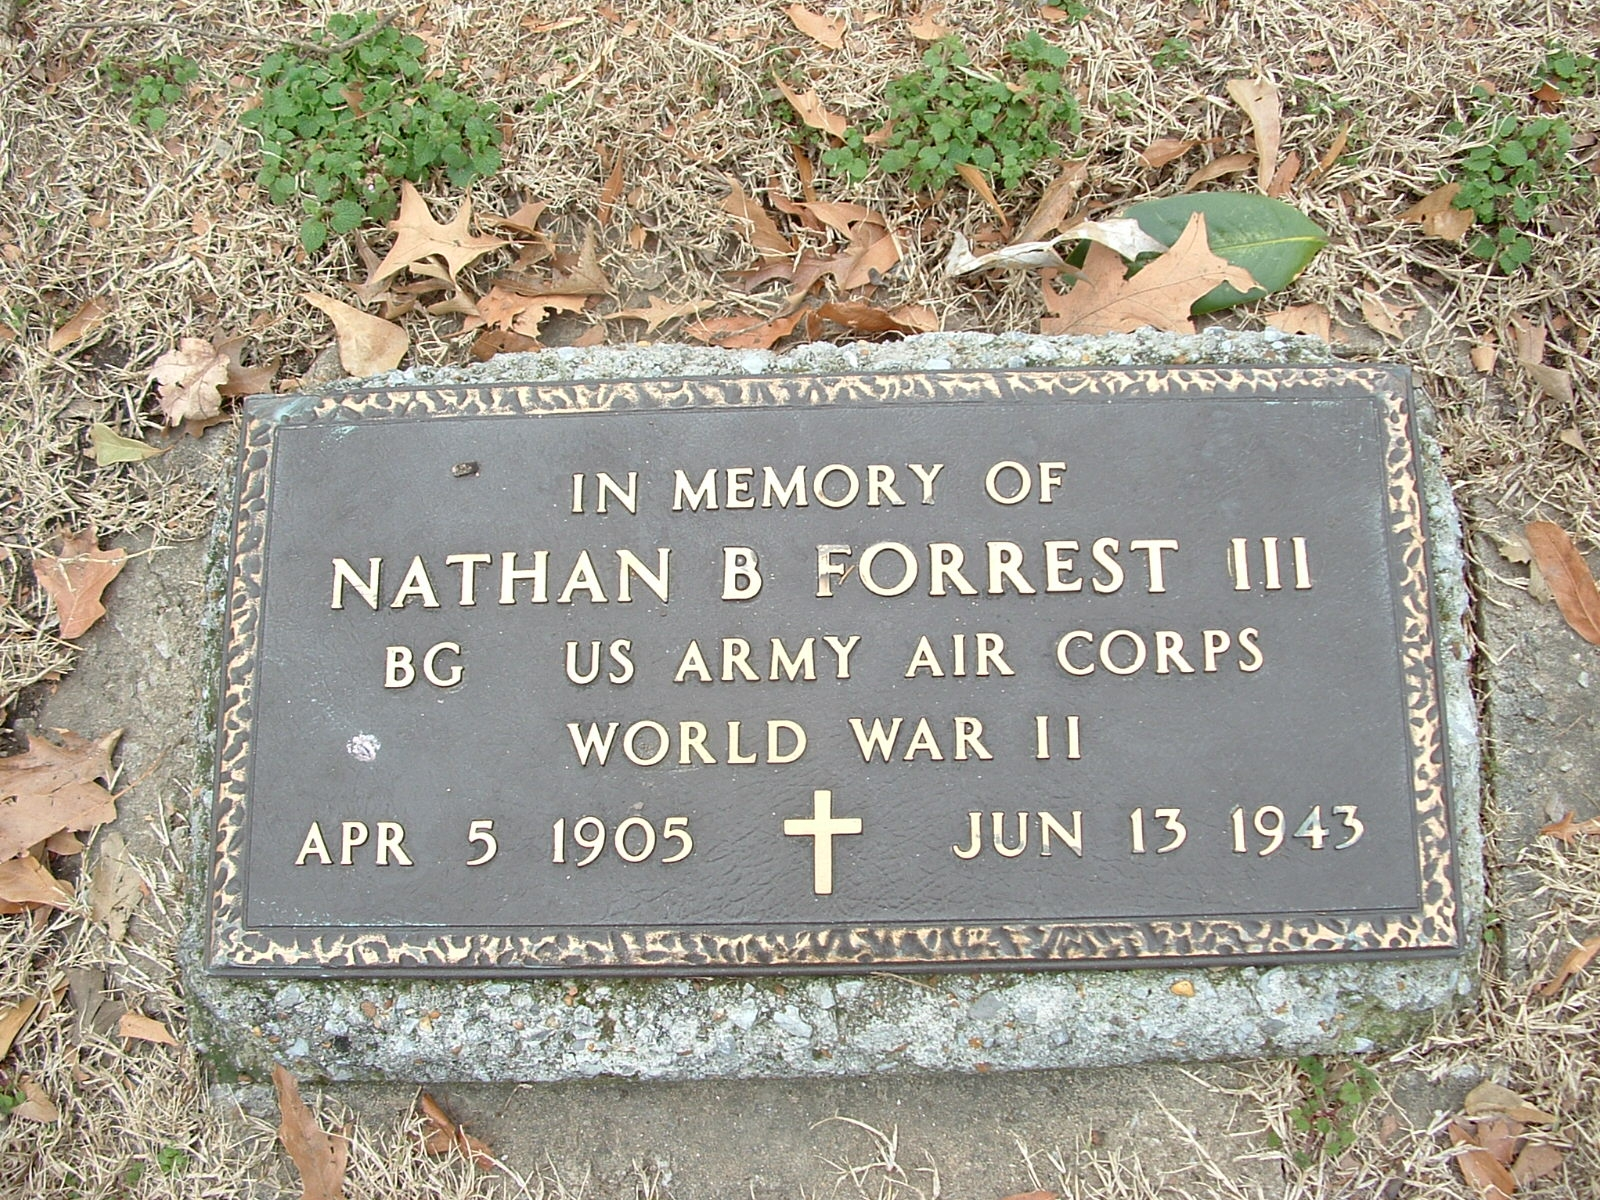 In Memory of Nathan Bedford Forrest III